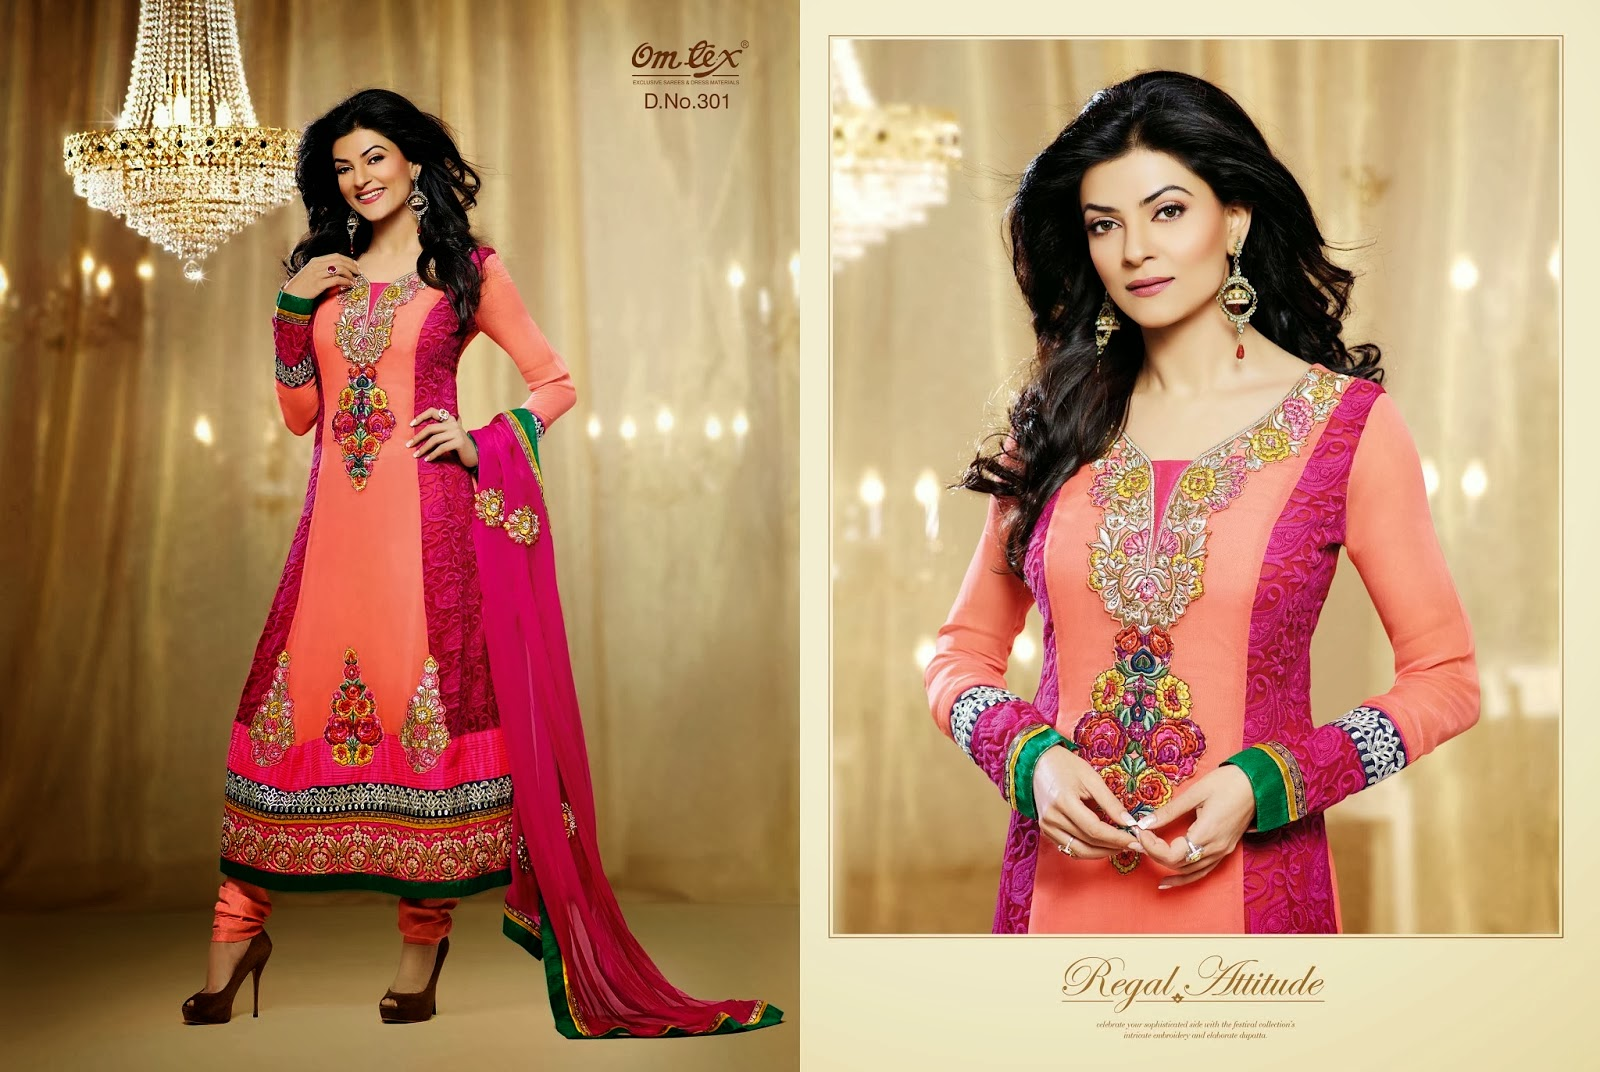 Sushmita Sen  wallpapers,Sushmita Sen  latest wallpapers,Sushmita Sen  hot wallpapers,Sushmita Sen  hot hd wallpapers,Sushmita Sen  latest hot wallpapers,Sushmita Sen  hd wallpapers,Sushmita Sen  wallpapers hot,Sushmita Sen  wallpapers hd,Sushmita Sen  pictures,Sushmita Sen  hot pictures,Sushmita Sen  latest hot pictures,Sushmita Sen  images,Sushmita Sen  hot images,Sushmita Sen  latest images,Sushmita Sen  pics,Sushmita Sen  hot pics,Sushmita Sen  latest pics,Sushmita Sen  latest hot pics,Sushmita Sen  photos,Sushmita Sen  hot photos,Sushmita Sen  latest hot photos,Sushmita Sen  photo shoot,Sushmita Sen  latest photo shoot,Sushmita Sen  in half saree,Sushmita Sen  in saree,Sushmita Sen  blouse model,Sushmita Sen  in tshirt,Sushmita Sen  in jeans,Sushmita Sen  hair style,Sushmita Sen  eyes,Sushmita Sen  eye brows,Sushmita Sen  hair color,Sushmita Sen  height,Sushmita Sen  weight,Sushmita Sen  diet,Sushmita Sen  boy friend,Sushmita Sen  gossips,Sushmita Sen  hot vedios,Sushmita Sen  latest hot vedios,Sushmita Sen  photo gallery,Sushmita Sen  biodata,Sushmita Sen  in wet dress,Sushmita Sen  in beach stills,Sushmita Sen  magazine cover page stills,Sushmita Sen  stills,Sushmita Sen  high resolution pictures,Sushmita Sen  high resolution wallpapers,pictures of Sushmita Sen ,pics of Sushmita Sen  ,Sushmita Sen   fake wallpapers,Sushmita Sen   fake pictures